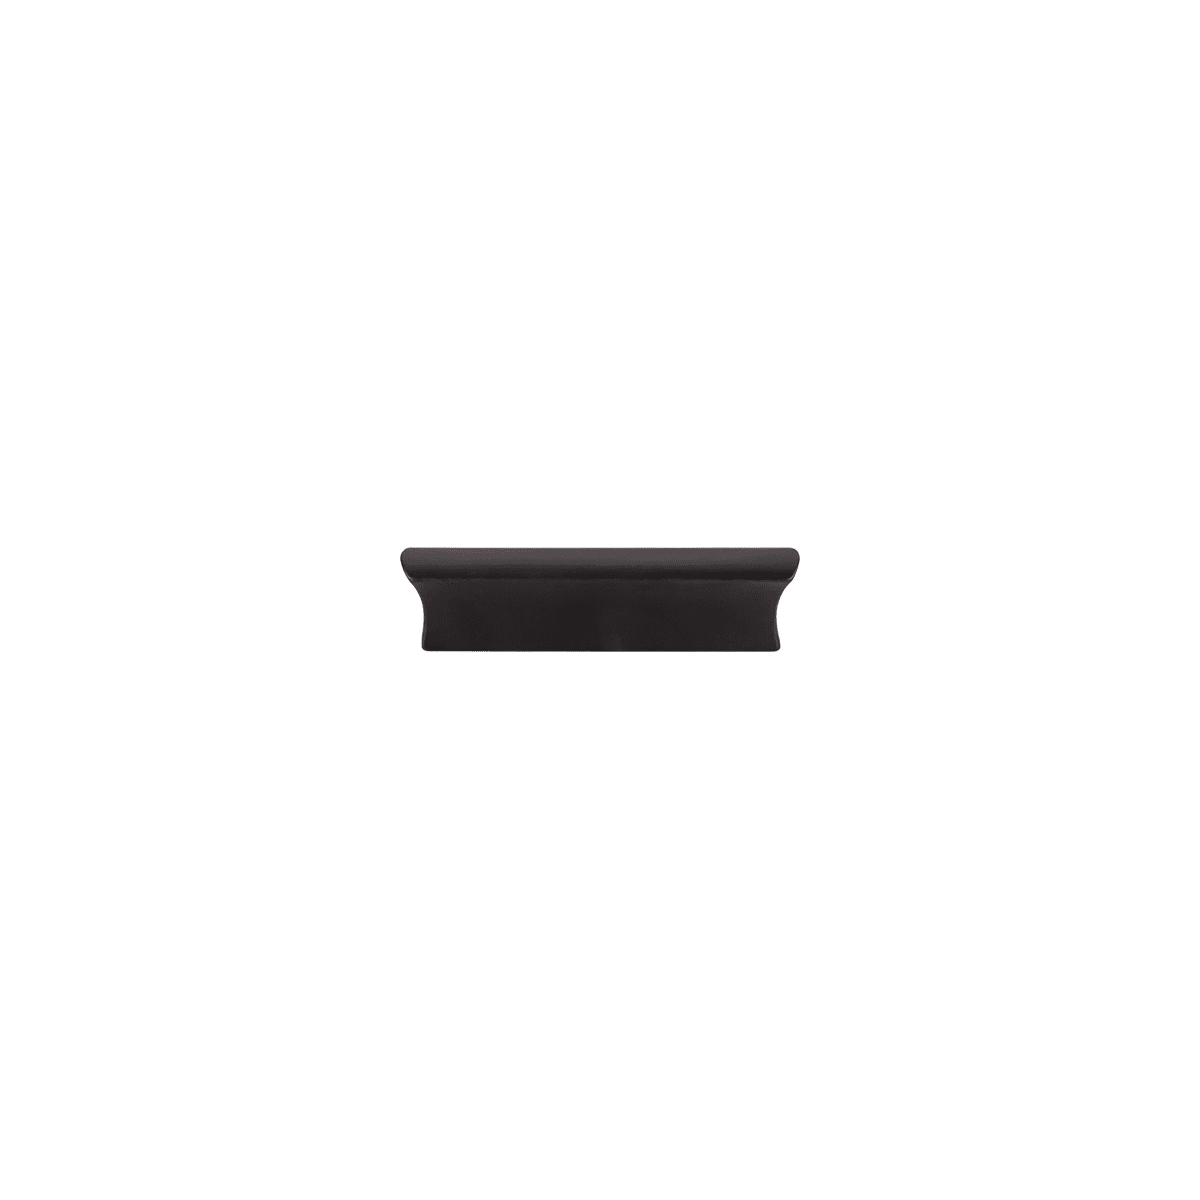 Top Knobs Glacier 3 Inch Center to Center Rectangular Cabinet Pull from the Mercer Series